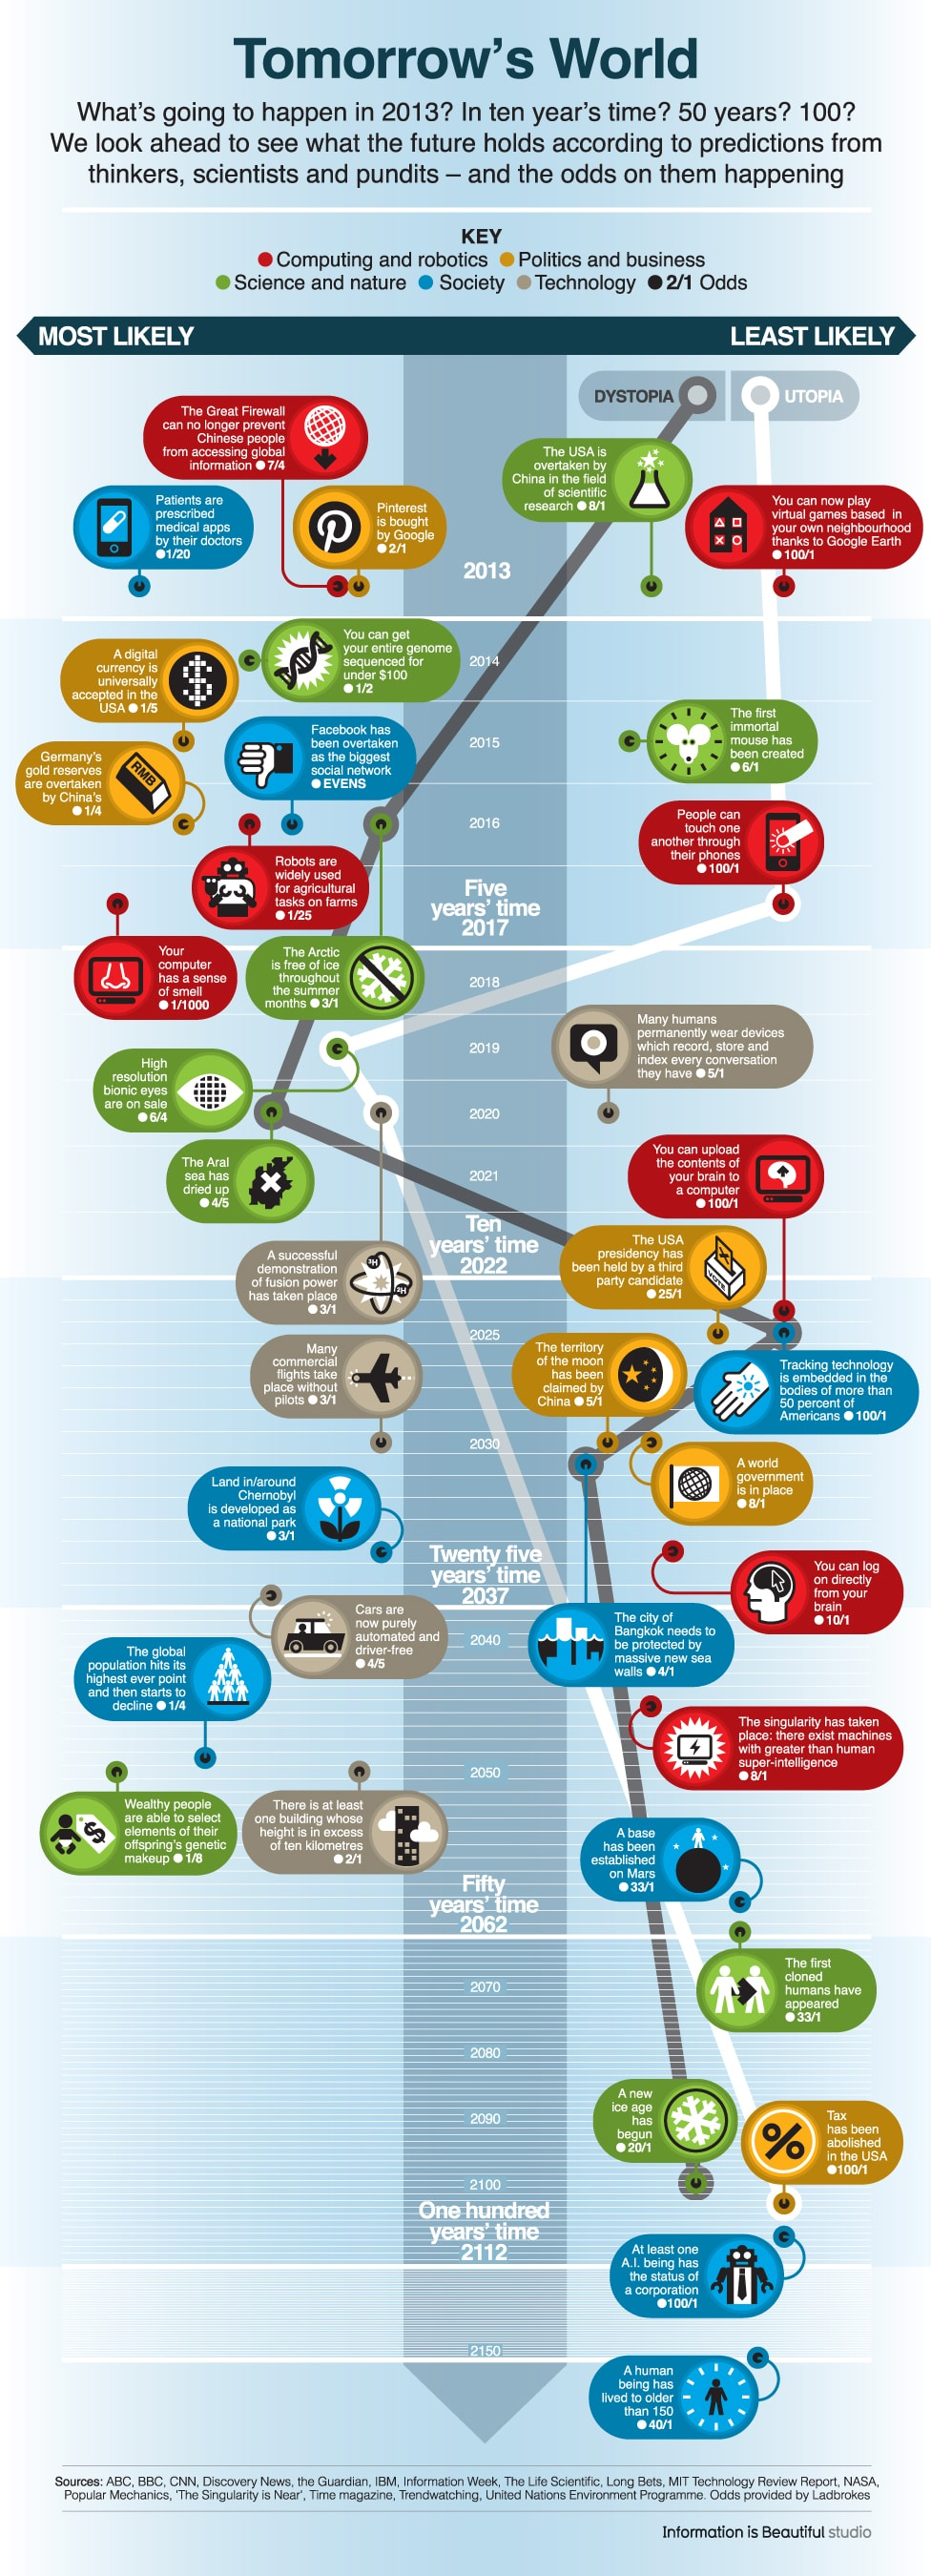 technology-next-150-years-infographic